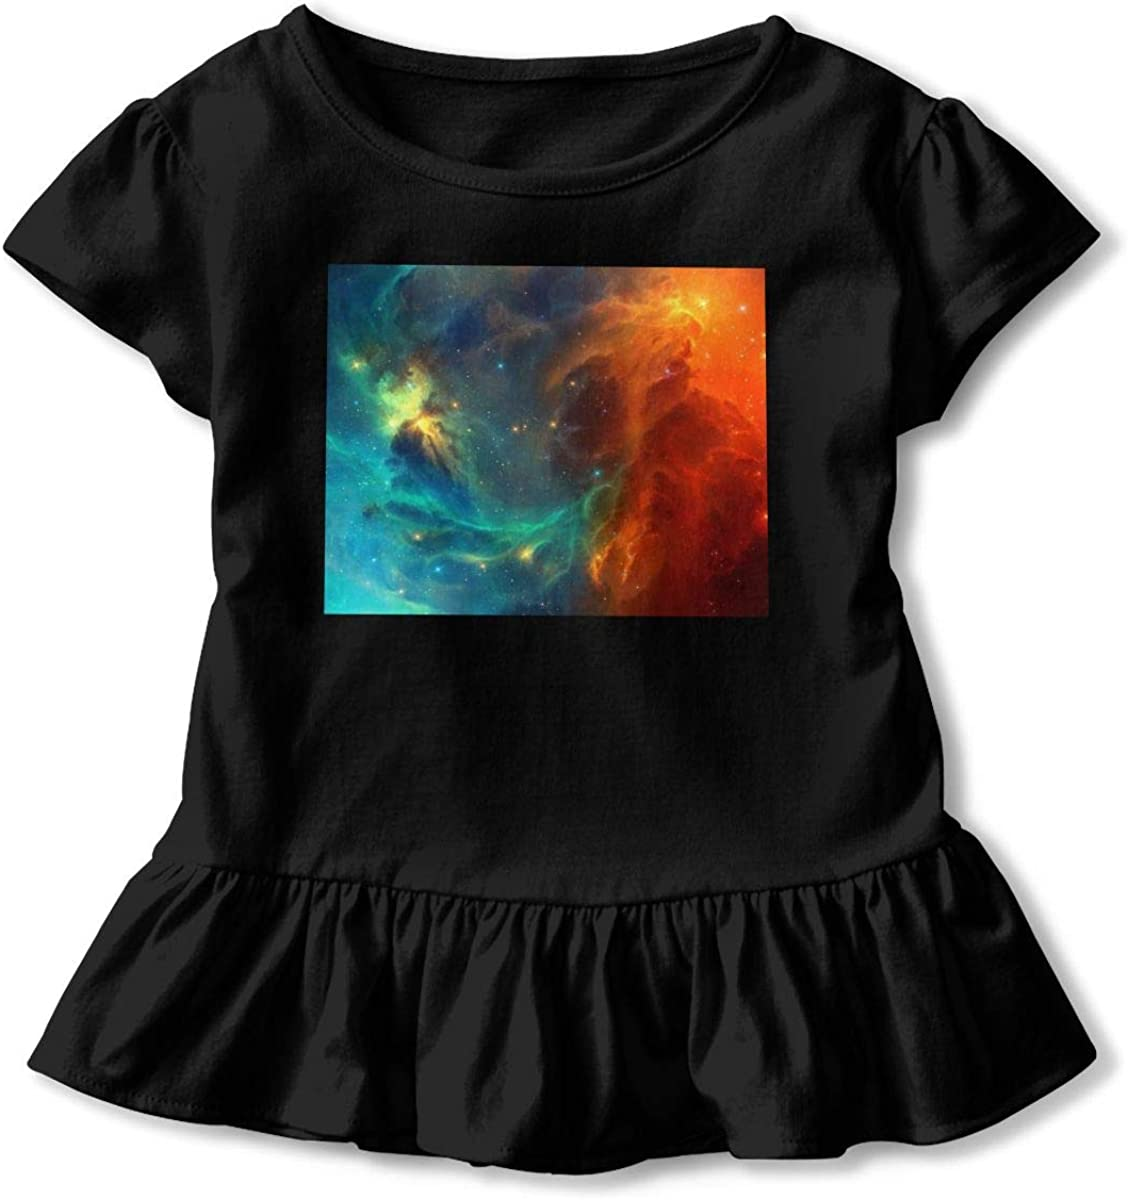 Not Available Space Tyler Worlds Star Toddler Girls Short Sleeve T-Shirt Flounced Casual Outfits for 2-6 Years Old Baby